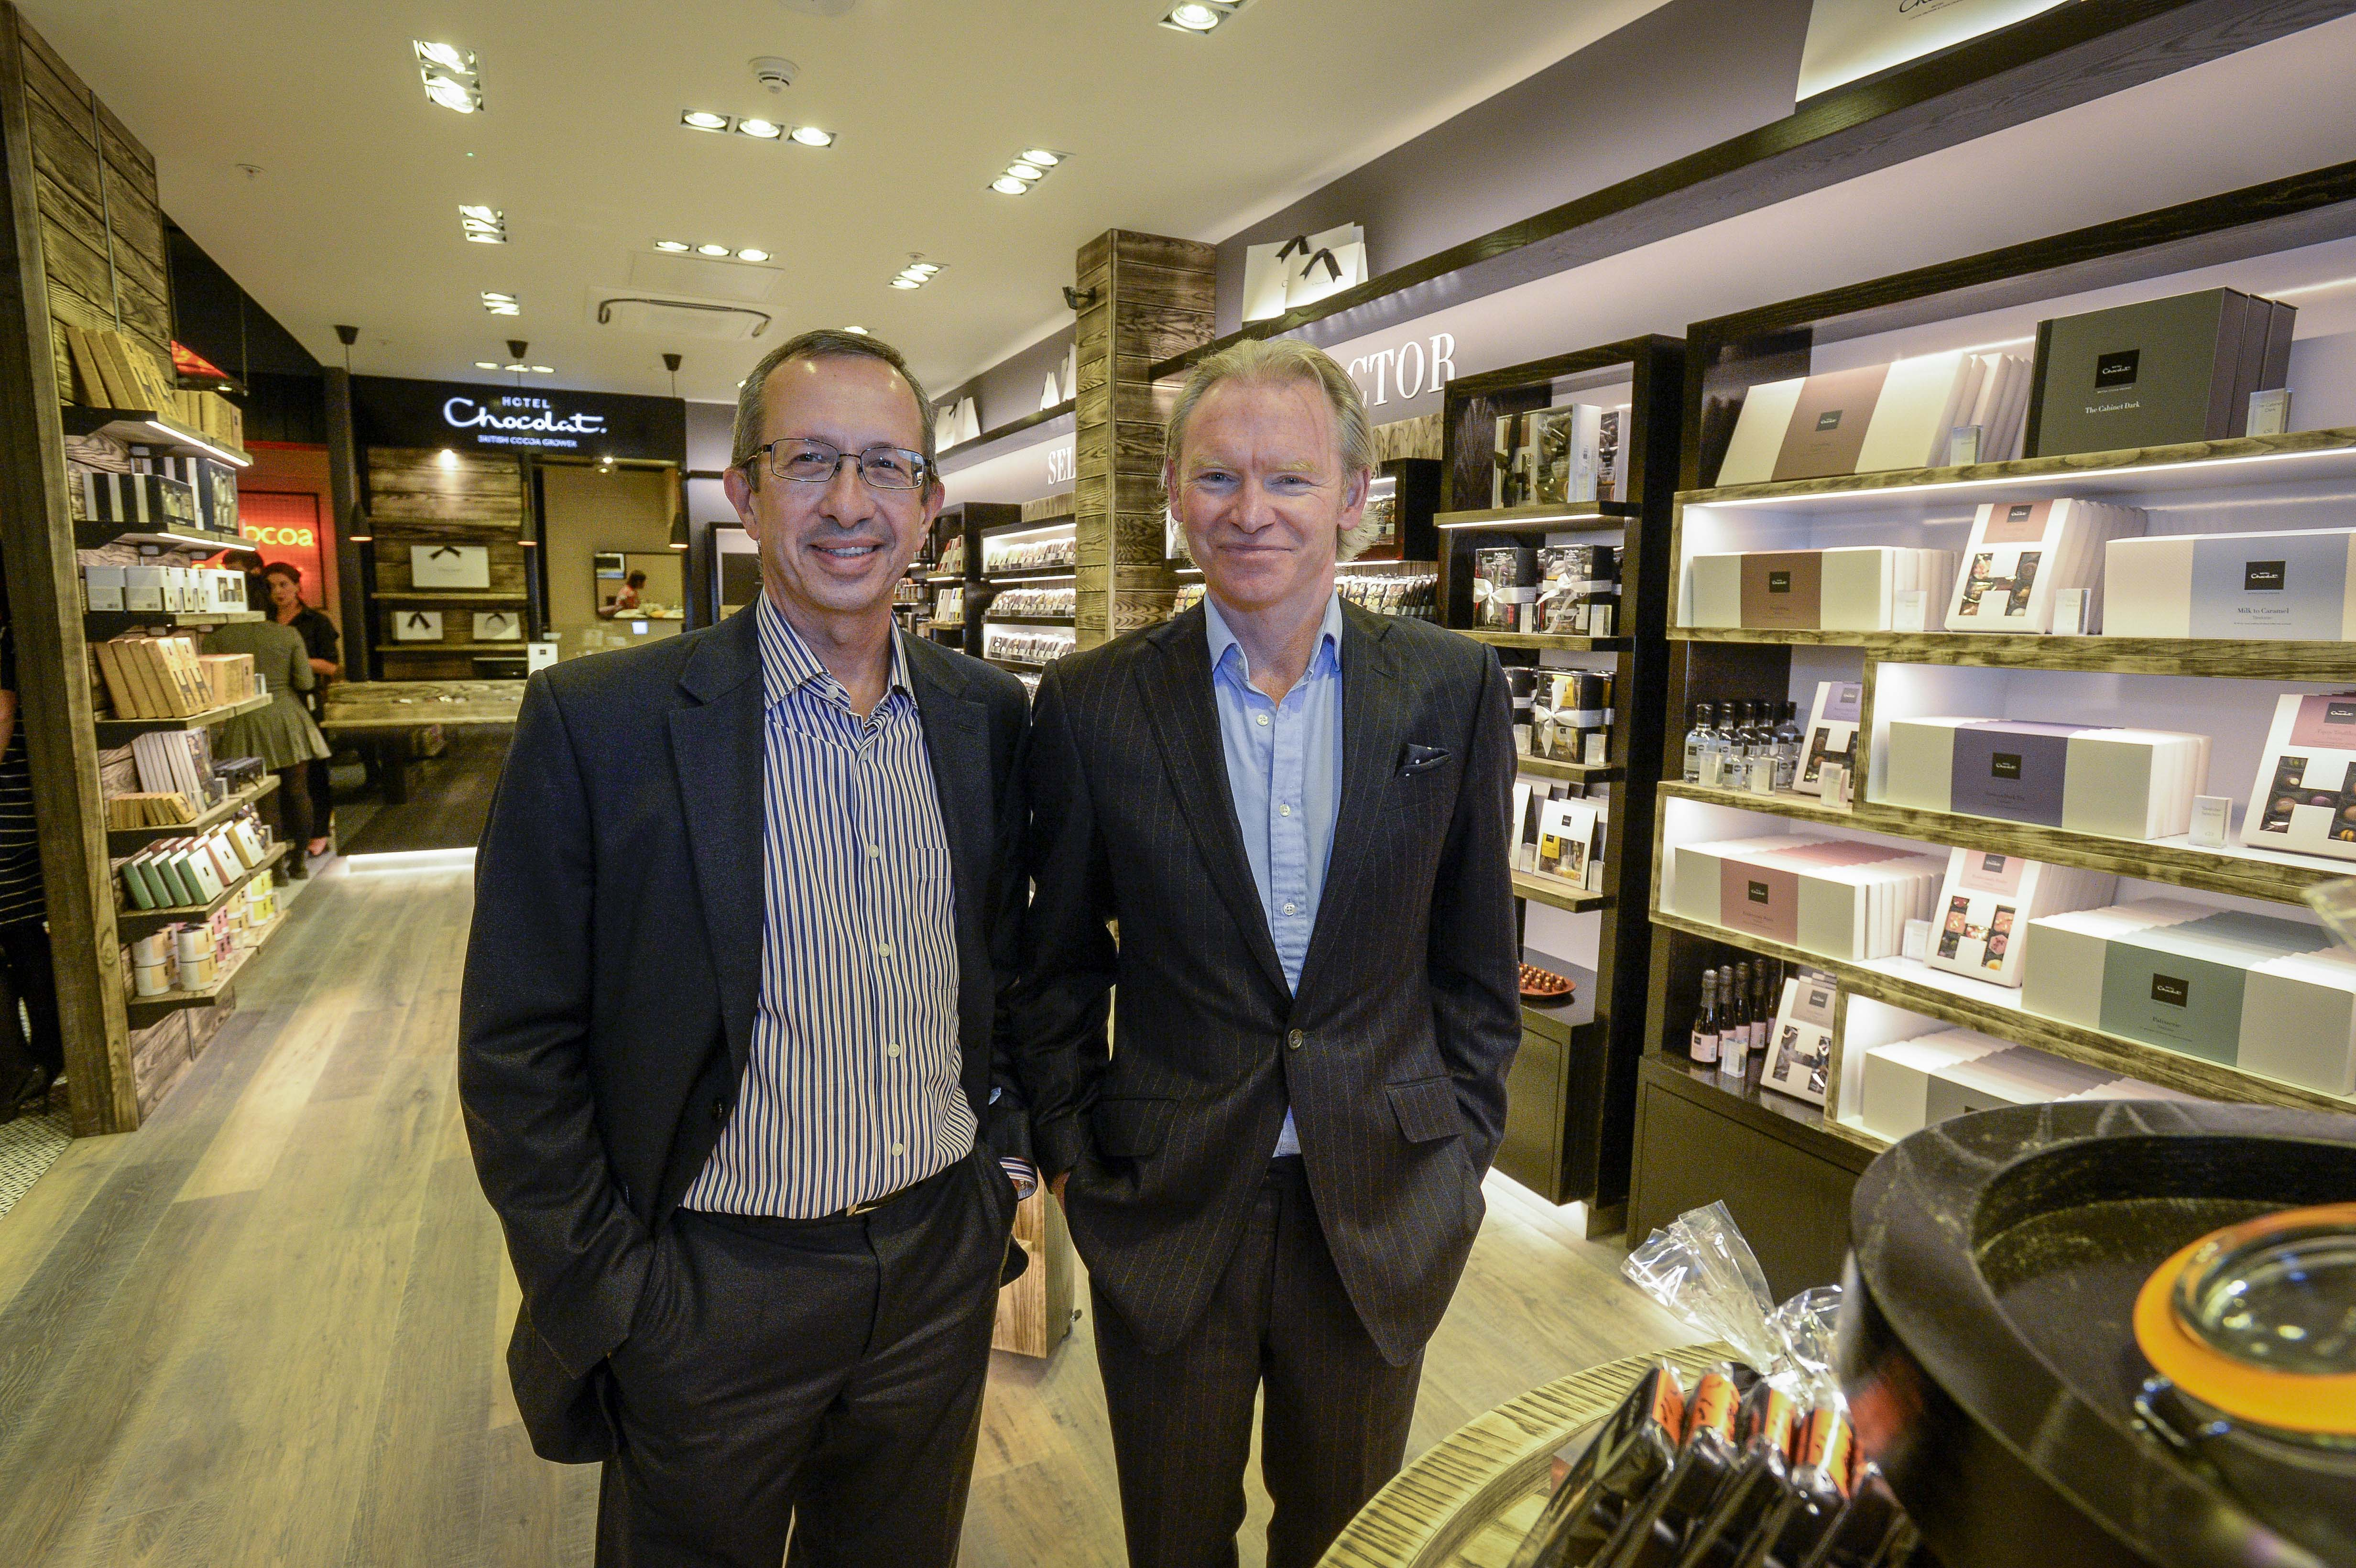 Hotel Chocolat picks IPO route to support accelerated site rollout